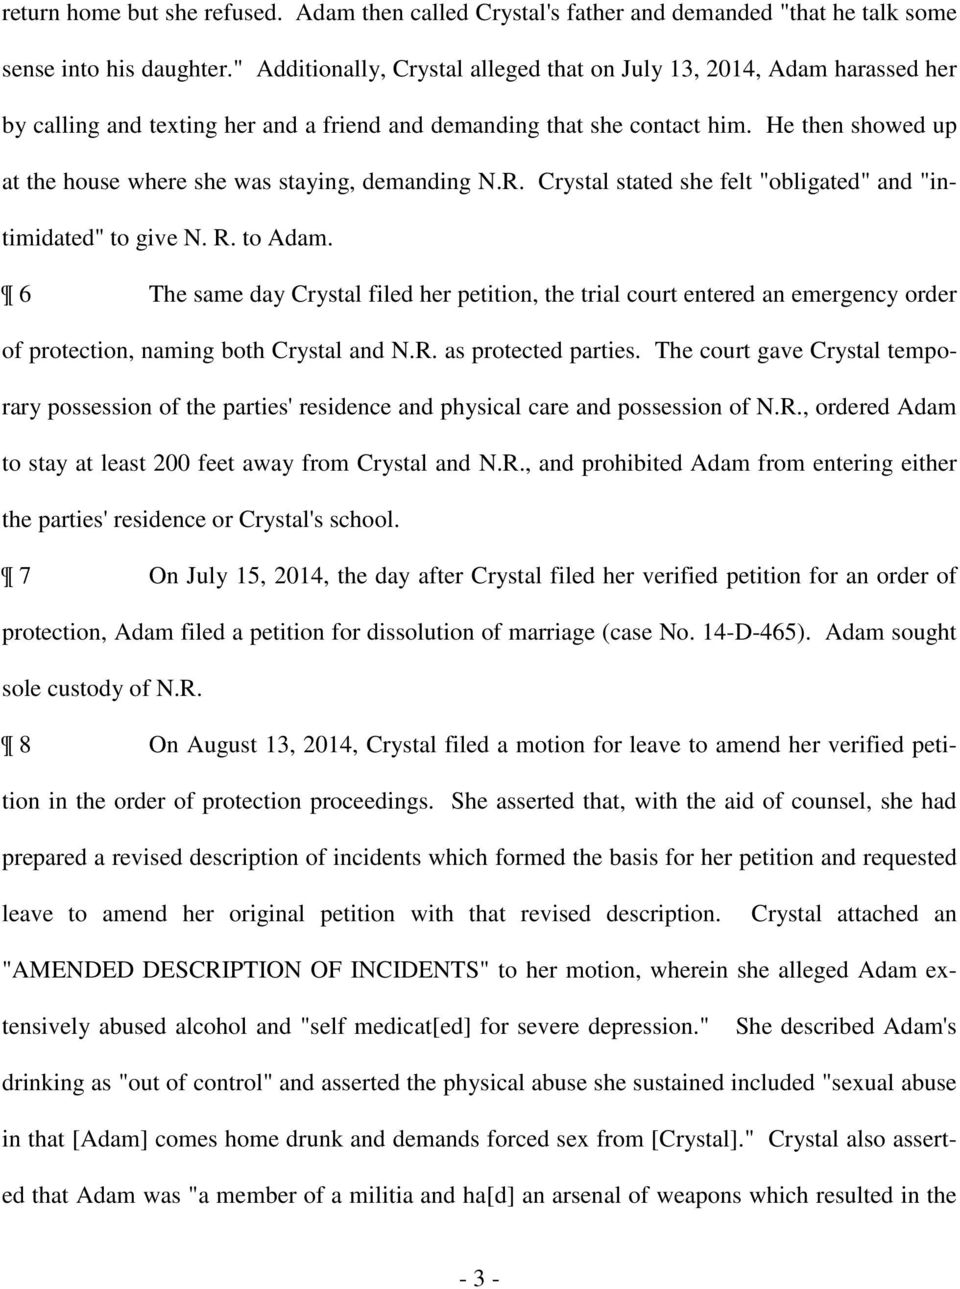 "He then showed up at the house where she was staying, demanding N.R. Crystal stated she felt ""obligated"" and ""intimidated"" to give N. R. to Adam."